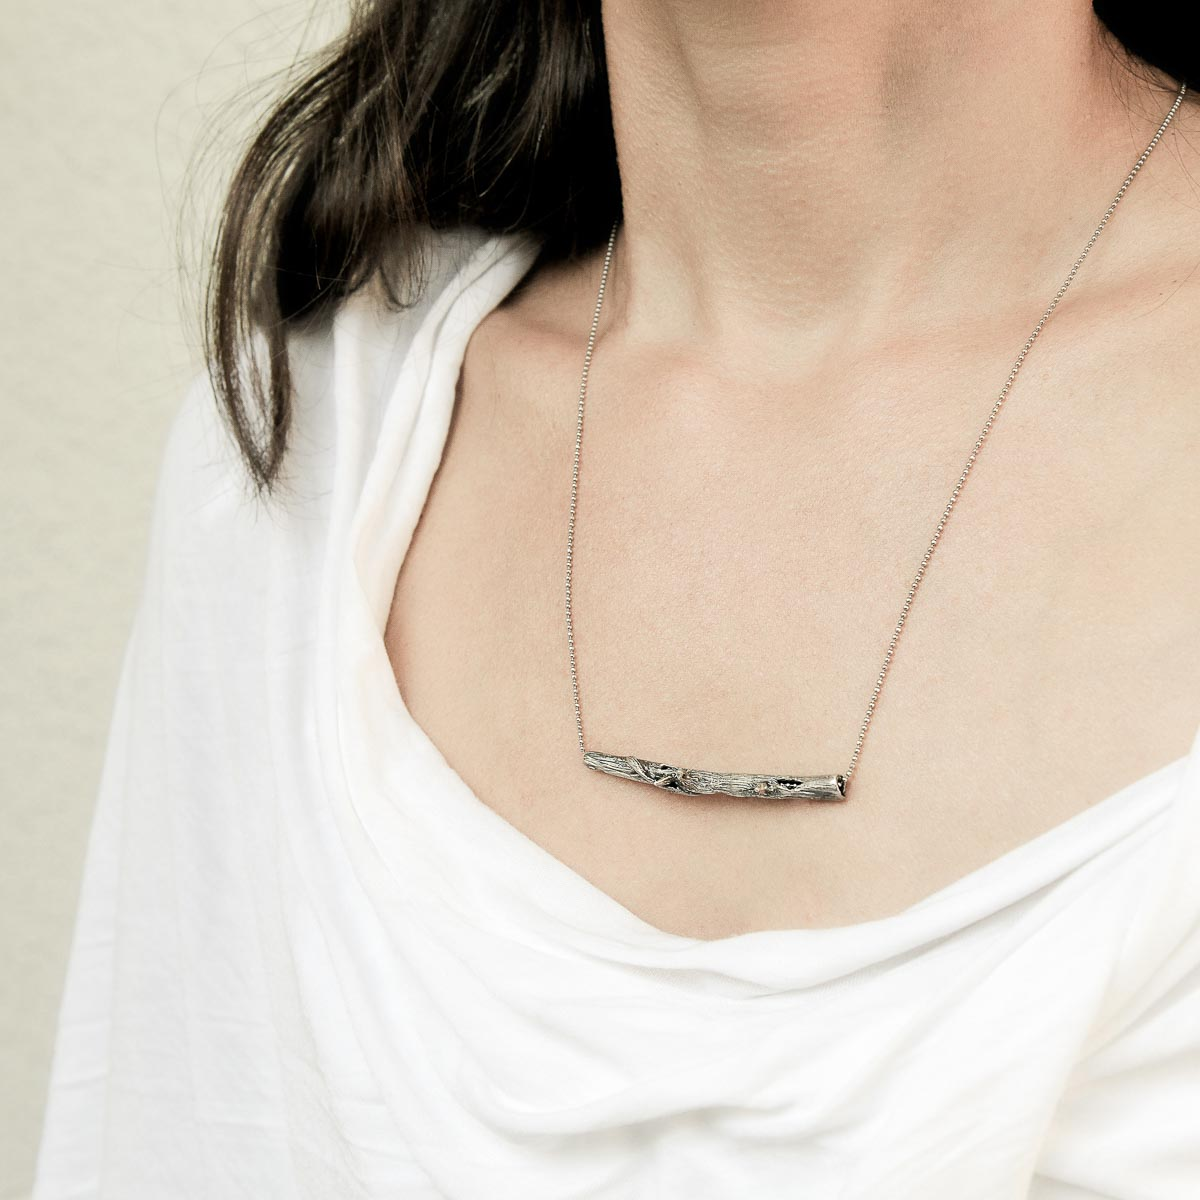 Branch silver necklace. Design and handmade for Bead A Boo jewelry by Katerina Glinou.